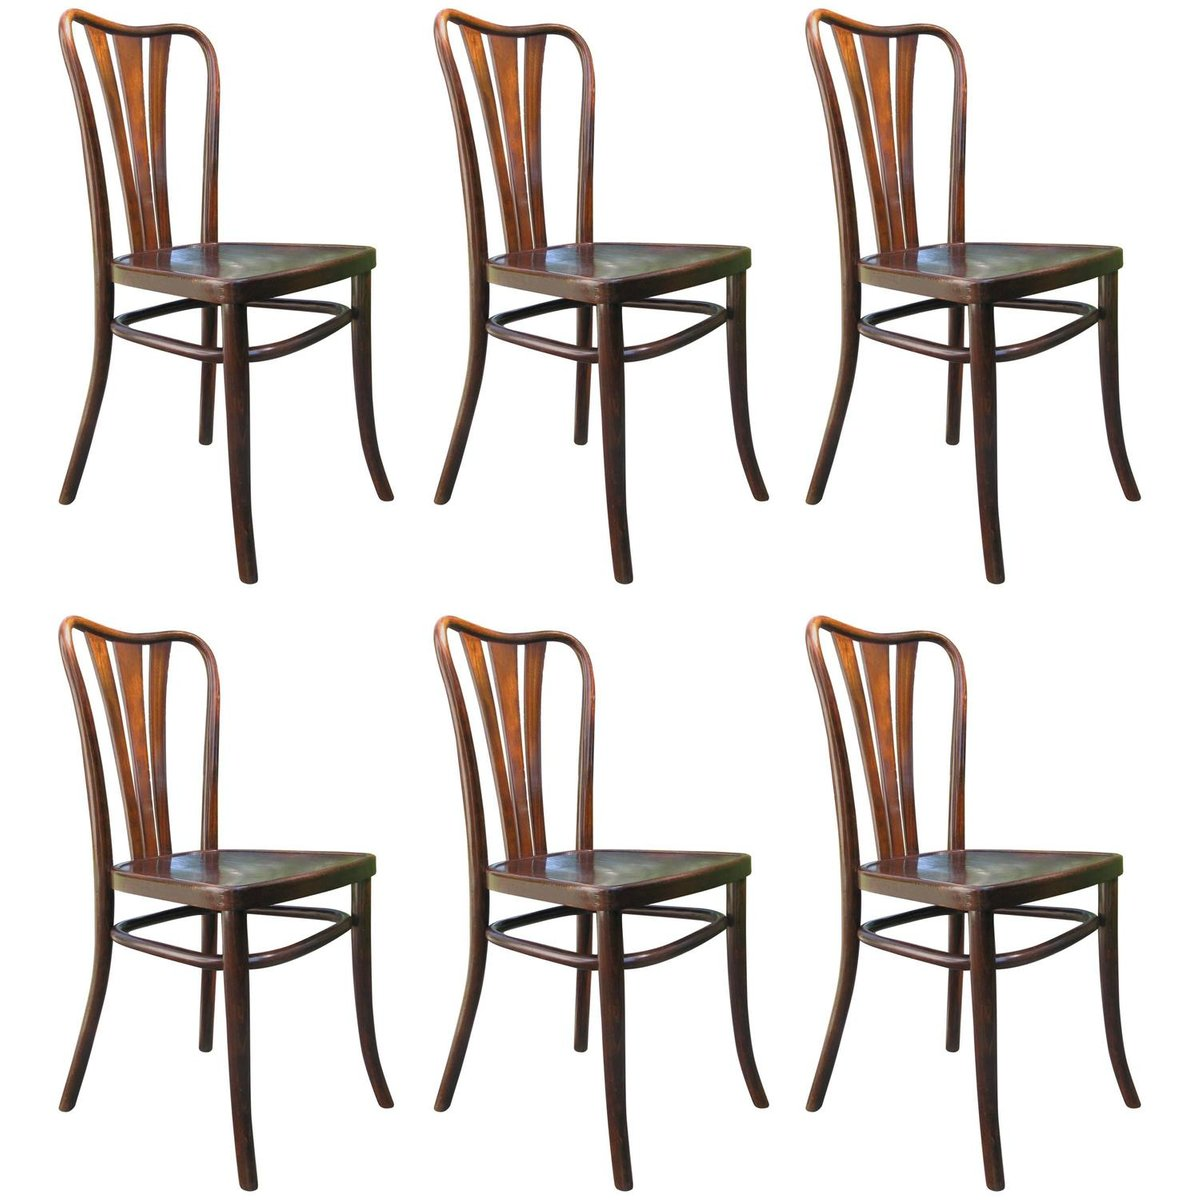 Vintage Dining Chairs From Thonet 1930s Set Of 6 For Sale At Pamono